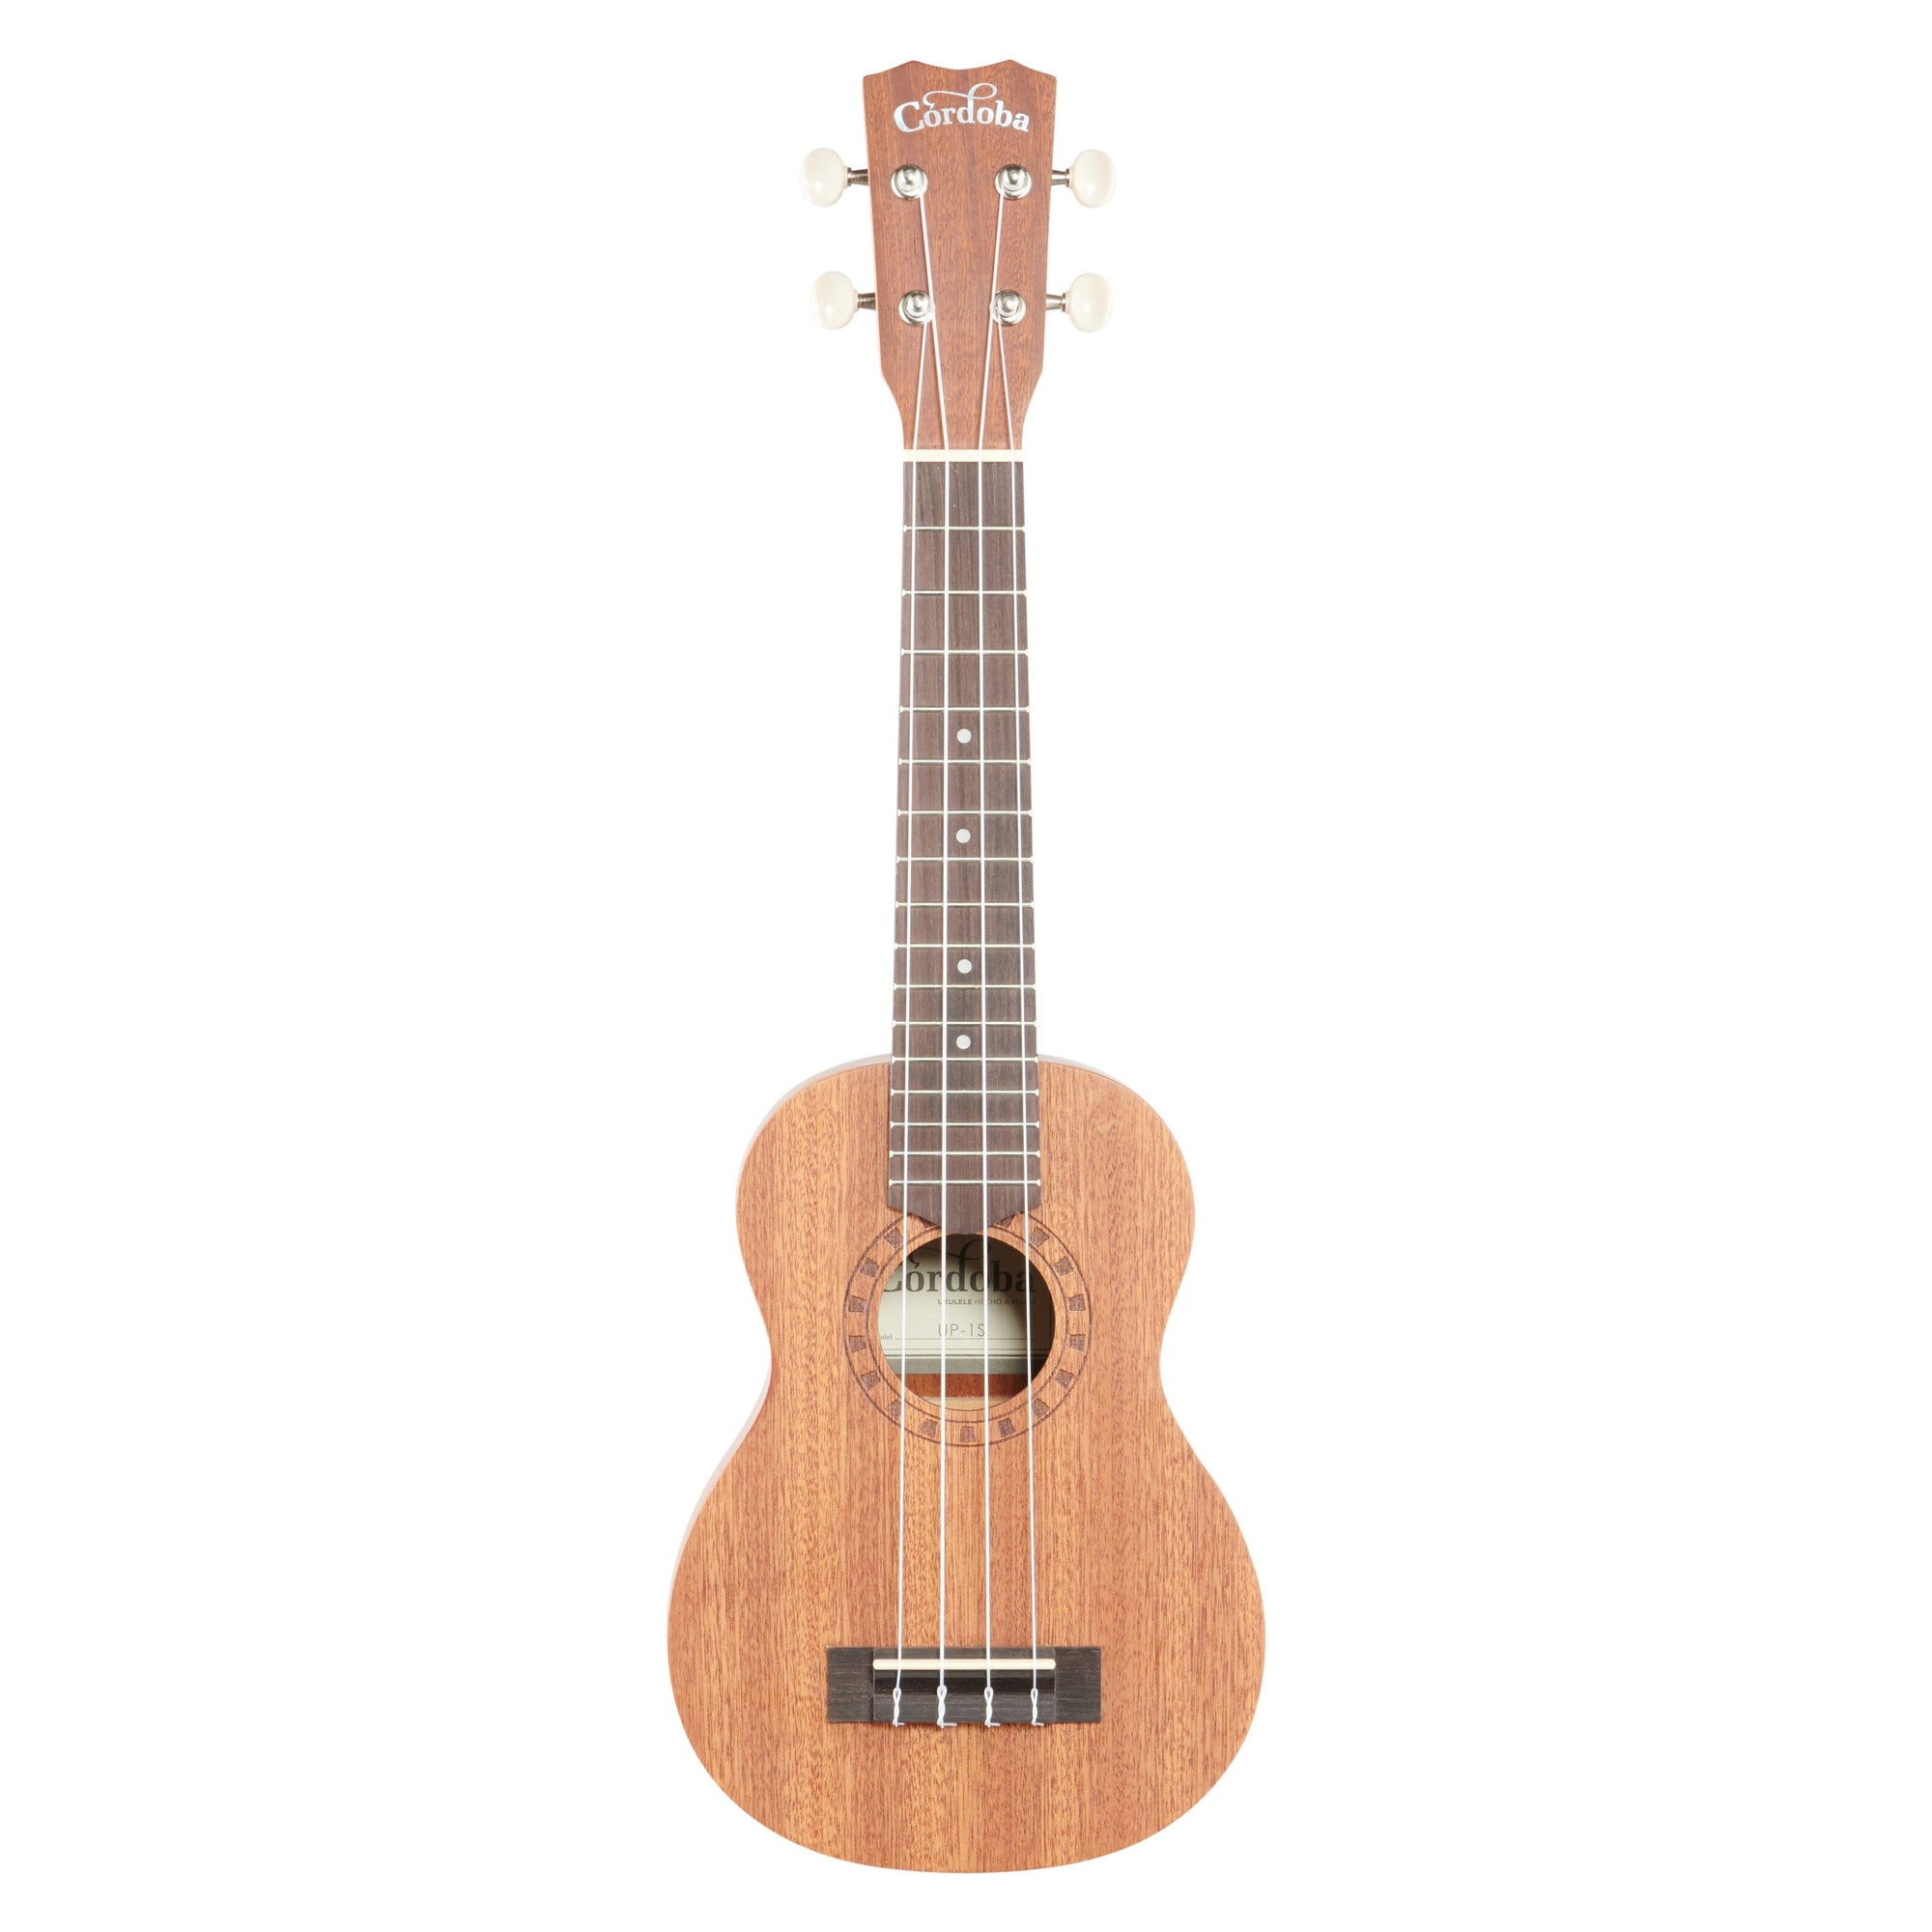 Cordoba Soprano Ukulele Player Pack